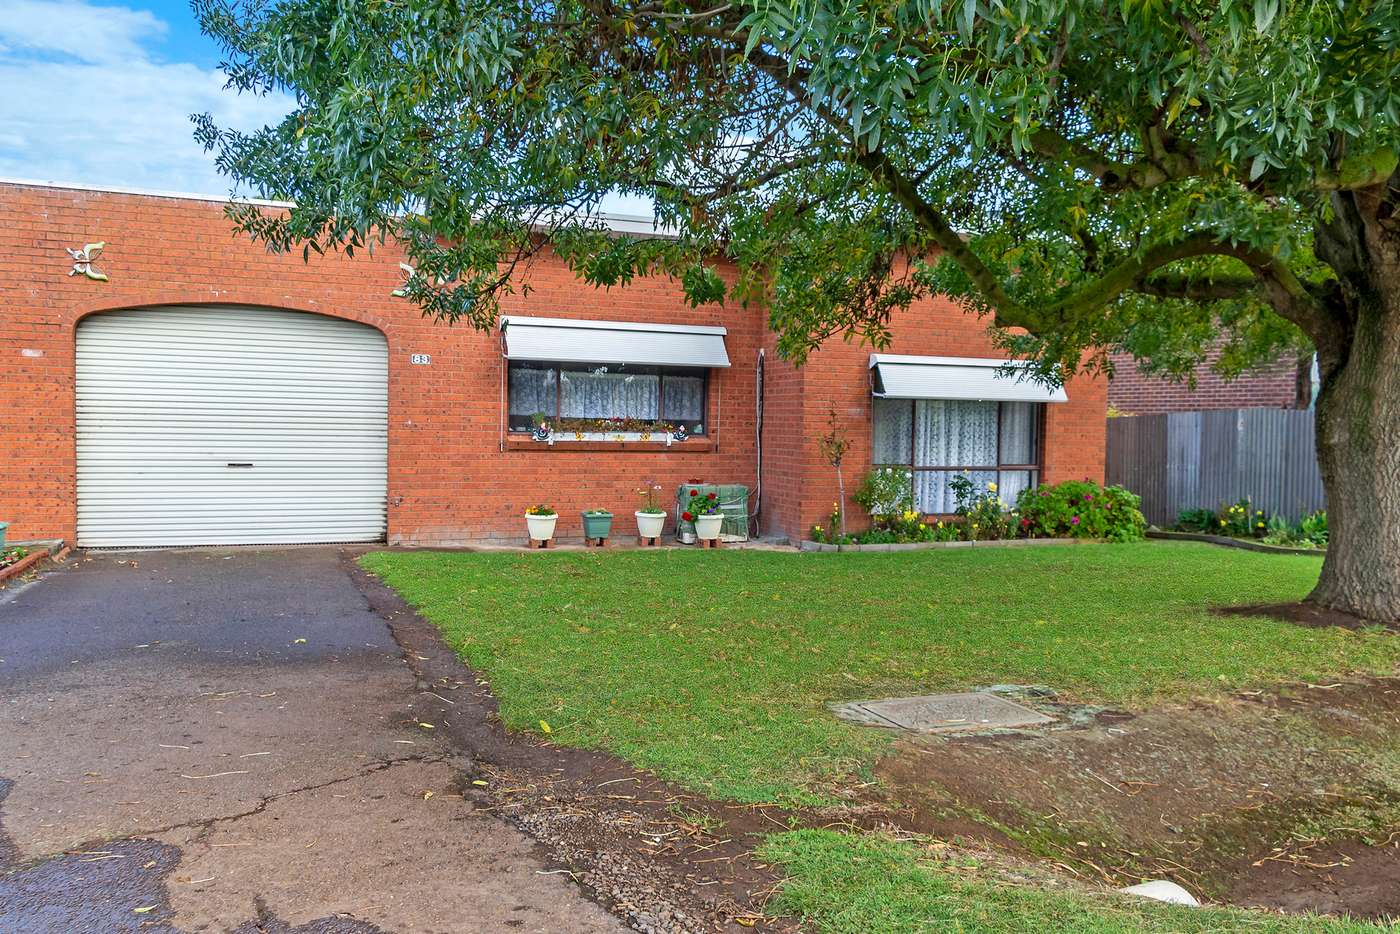 Main view of Homely house listing, 83 Learmonth Street, Portland VIC 3305